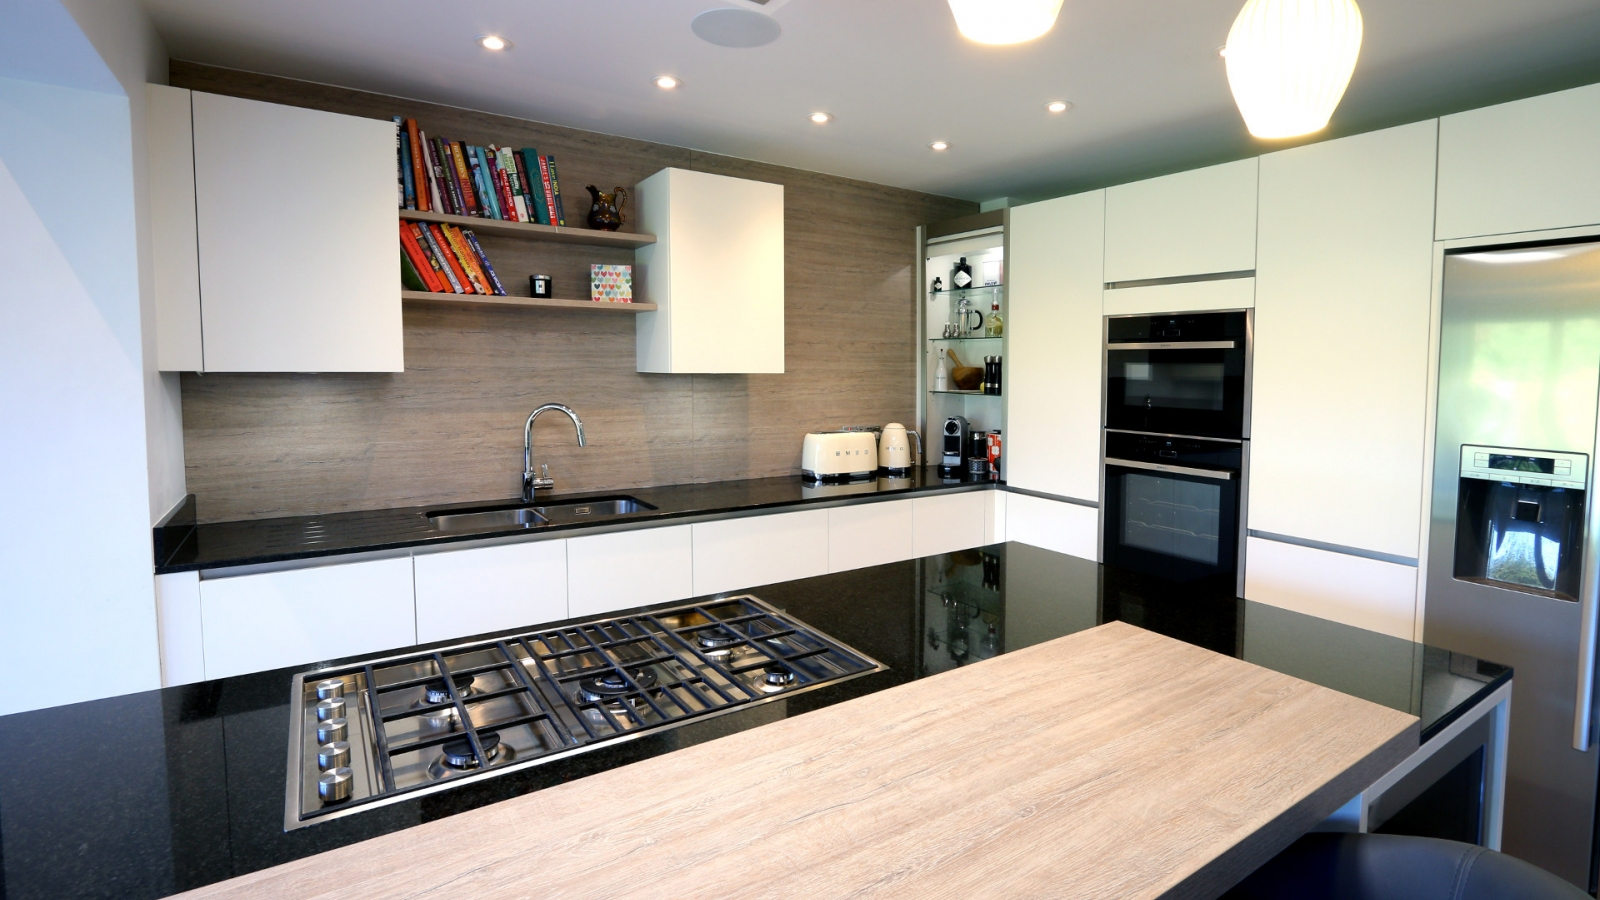 Contemporary Kitchen Renovation At Griffin Road 1st November 2017 News Events Sky House